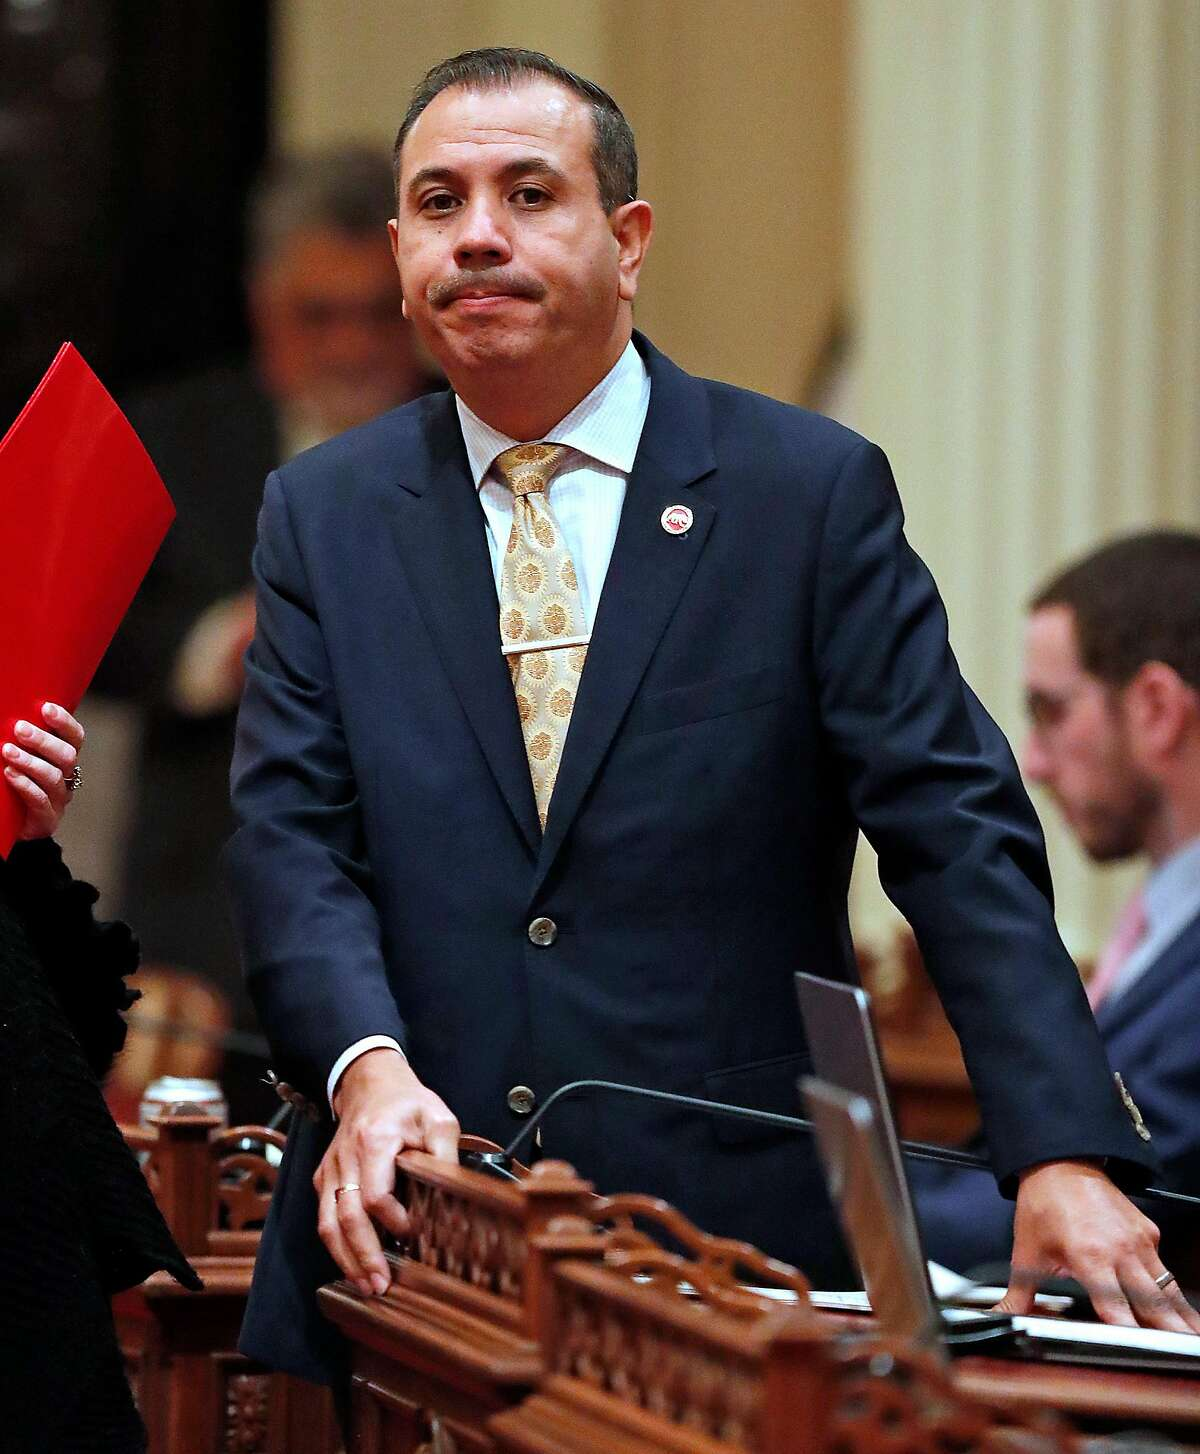 California Senator Tony Mendoza after announcing that he will take a one month leave of absence during the investigation of his alleged sexual misconduct during session at State Capitol in Sacramento, Calif., on Wednesday, January 3, 2018.